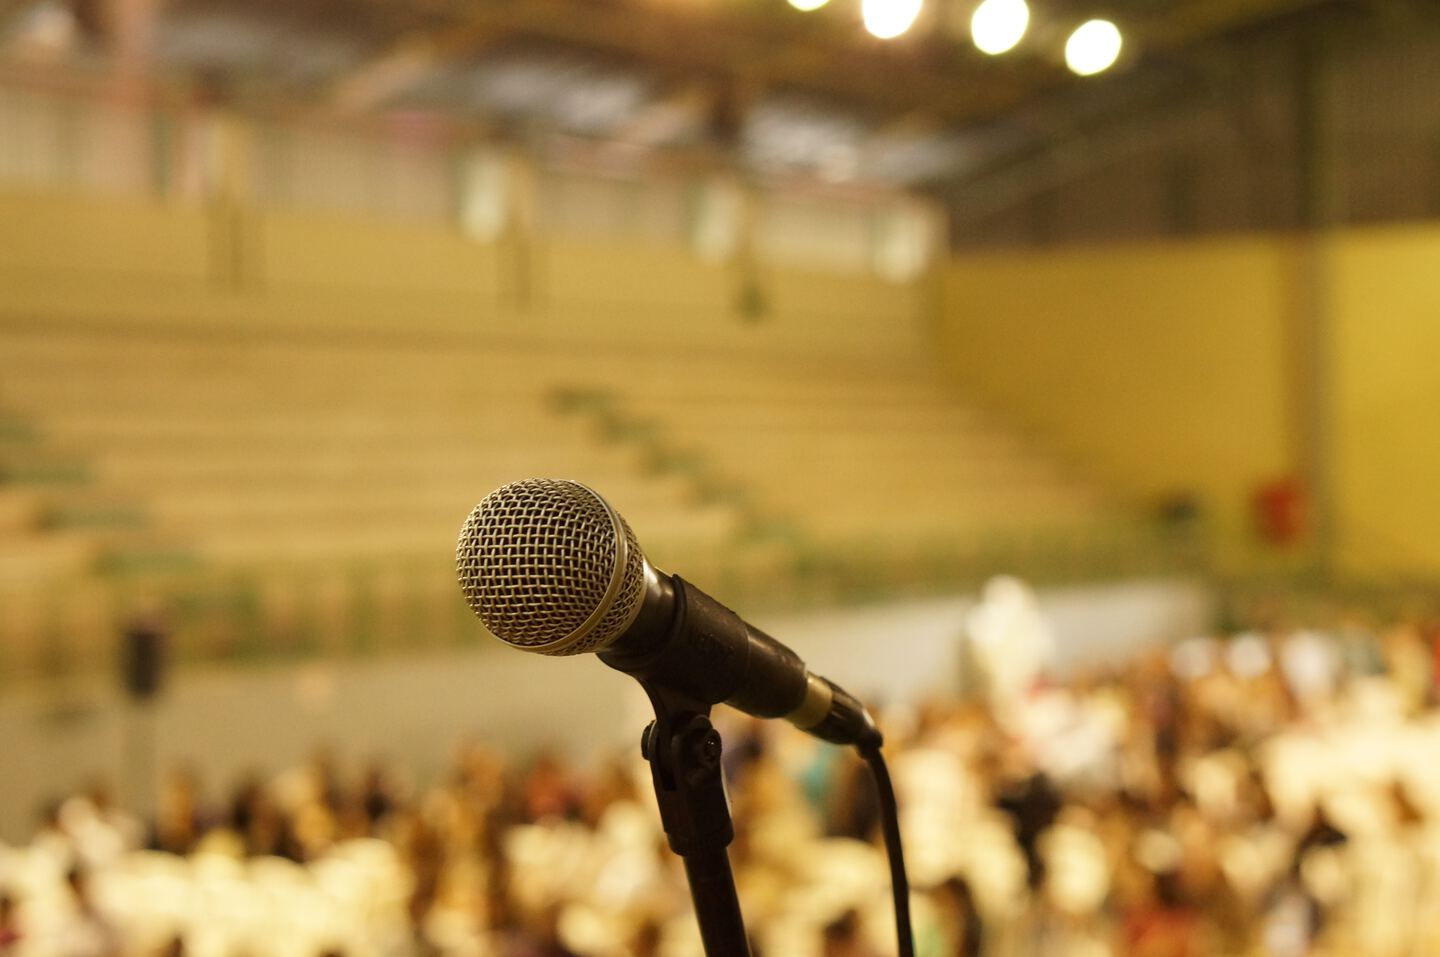 microphone with an audience in the background